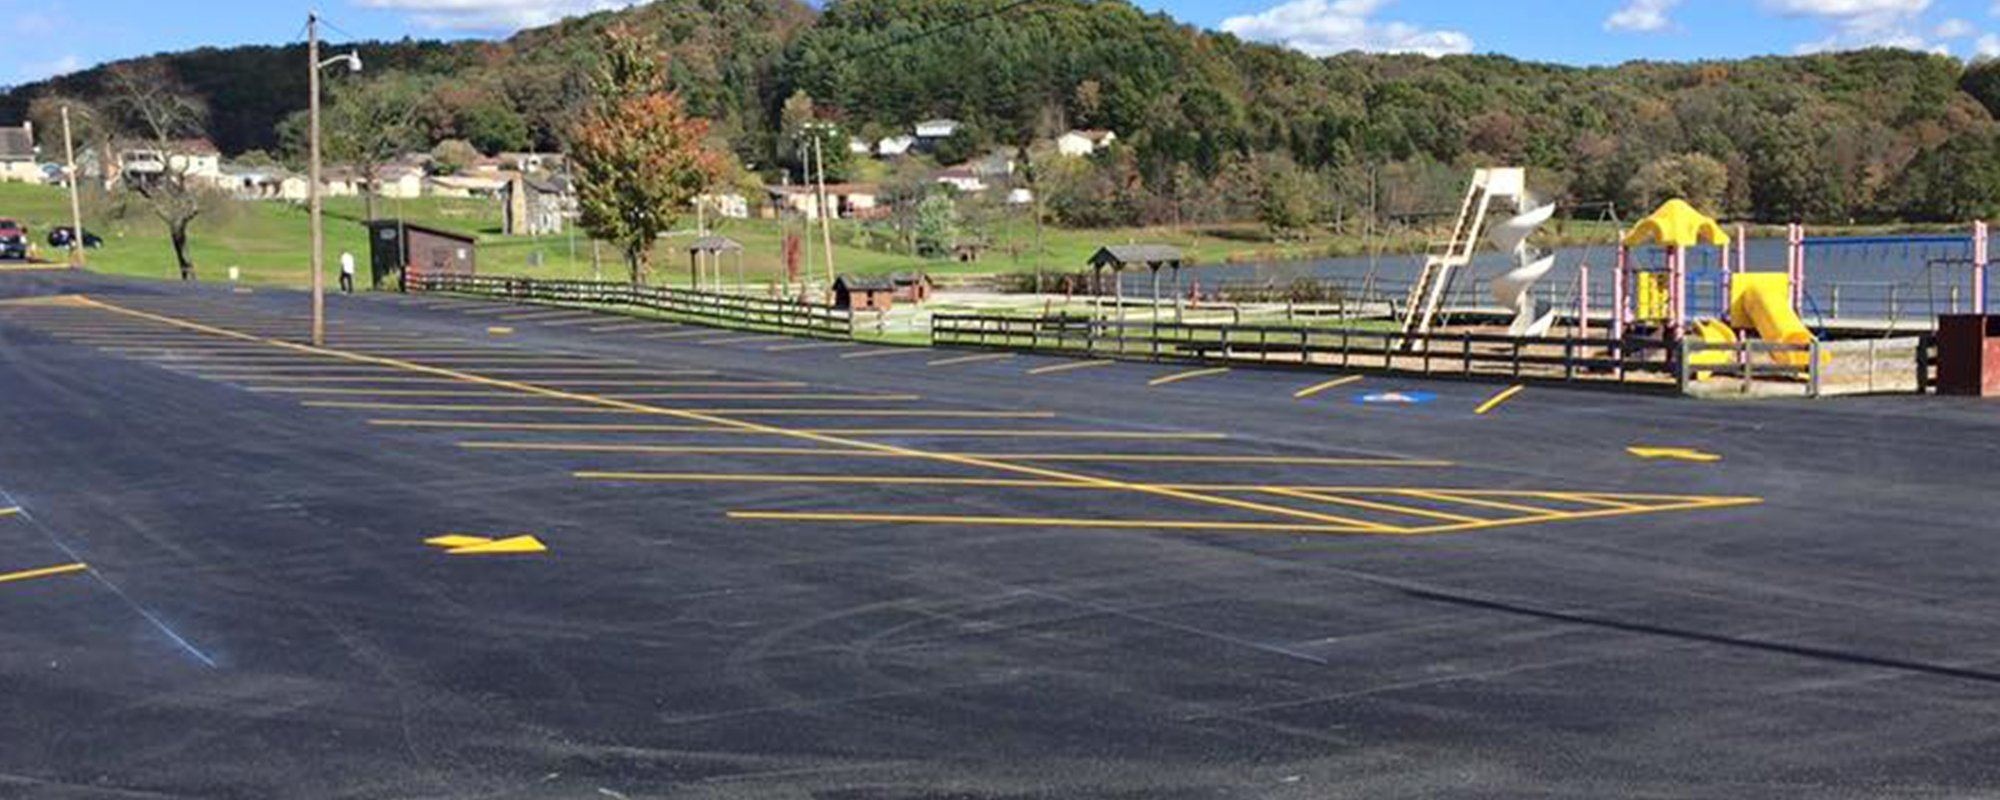 Well paved road built by experts in Virginia